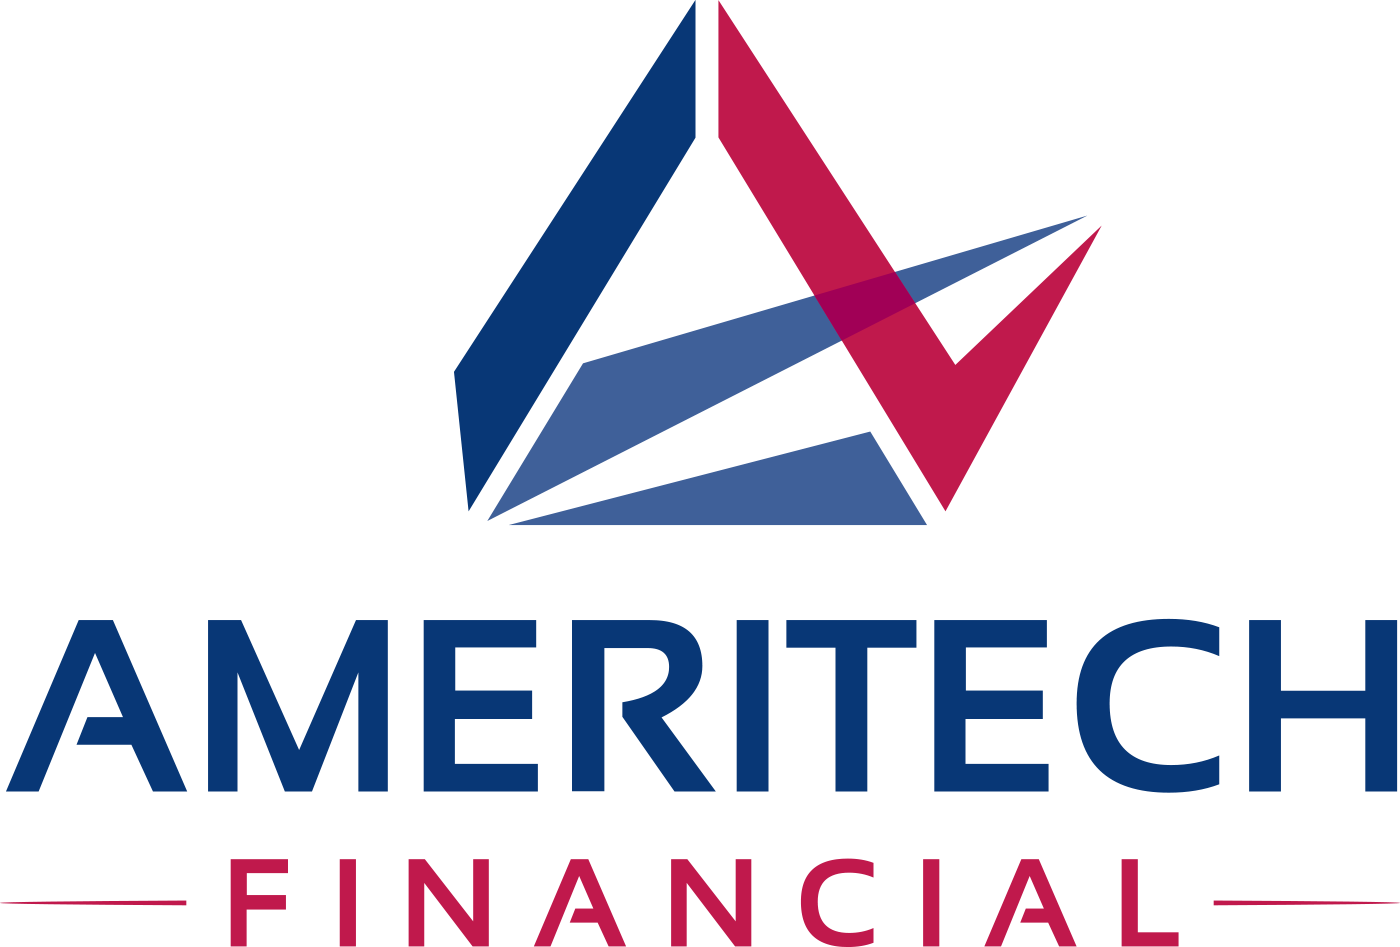 Ameritech Financial Suggests Student Loan Borrowers Look at Their Whole Financial Situation